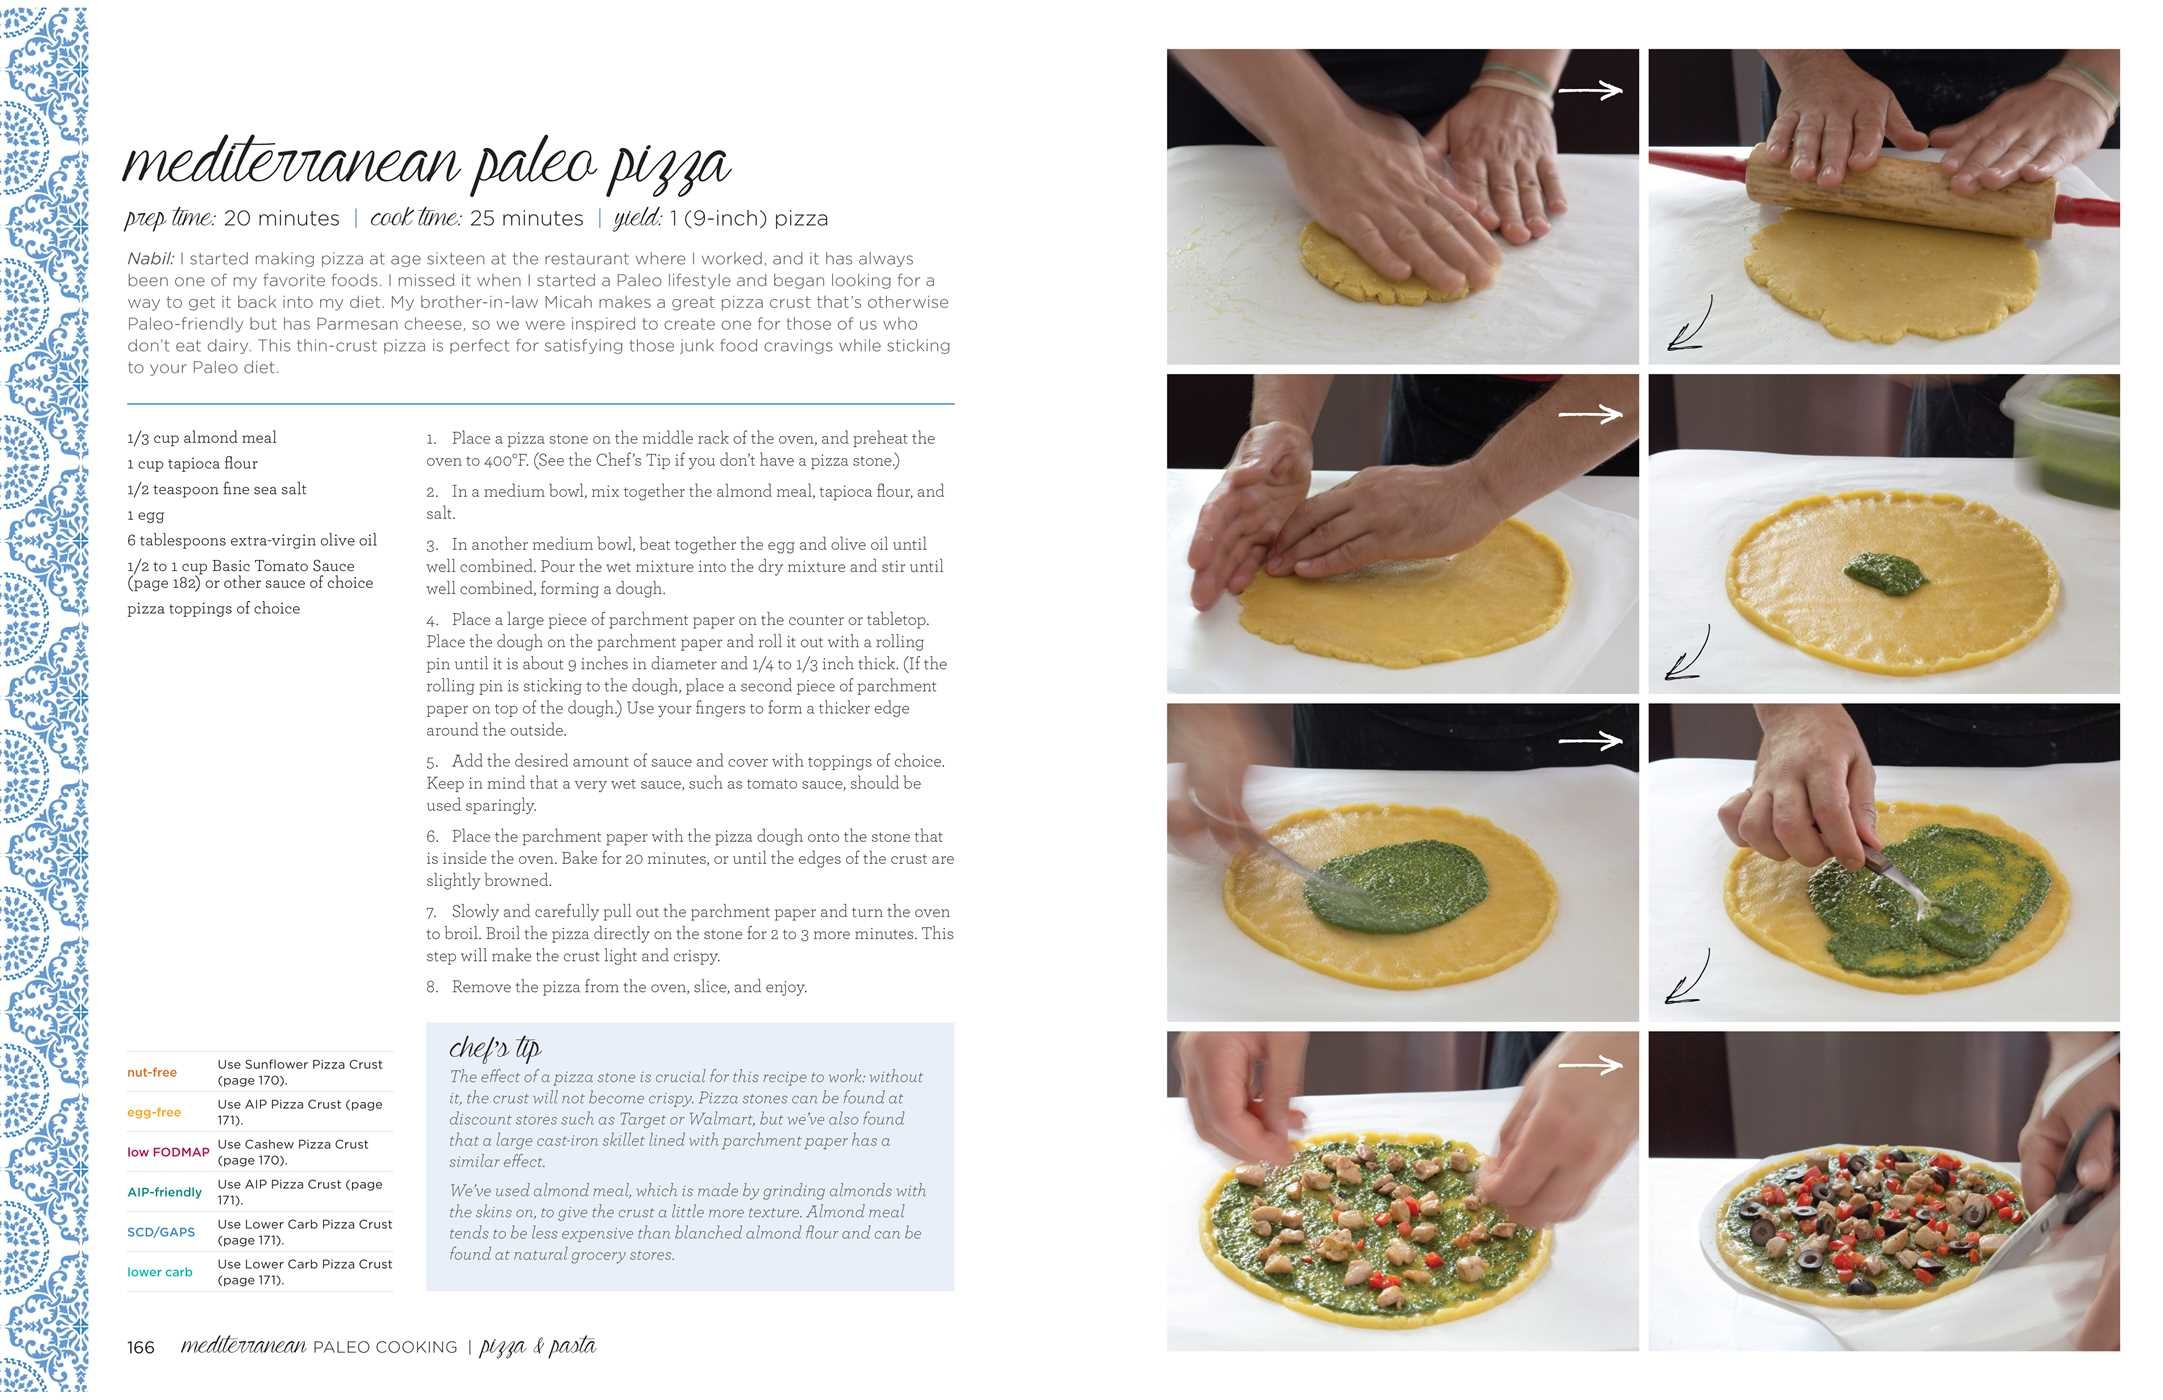 Mediterranean-paleo-cooking-9781628600407.in02